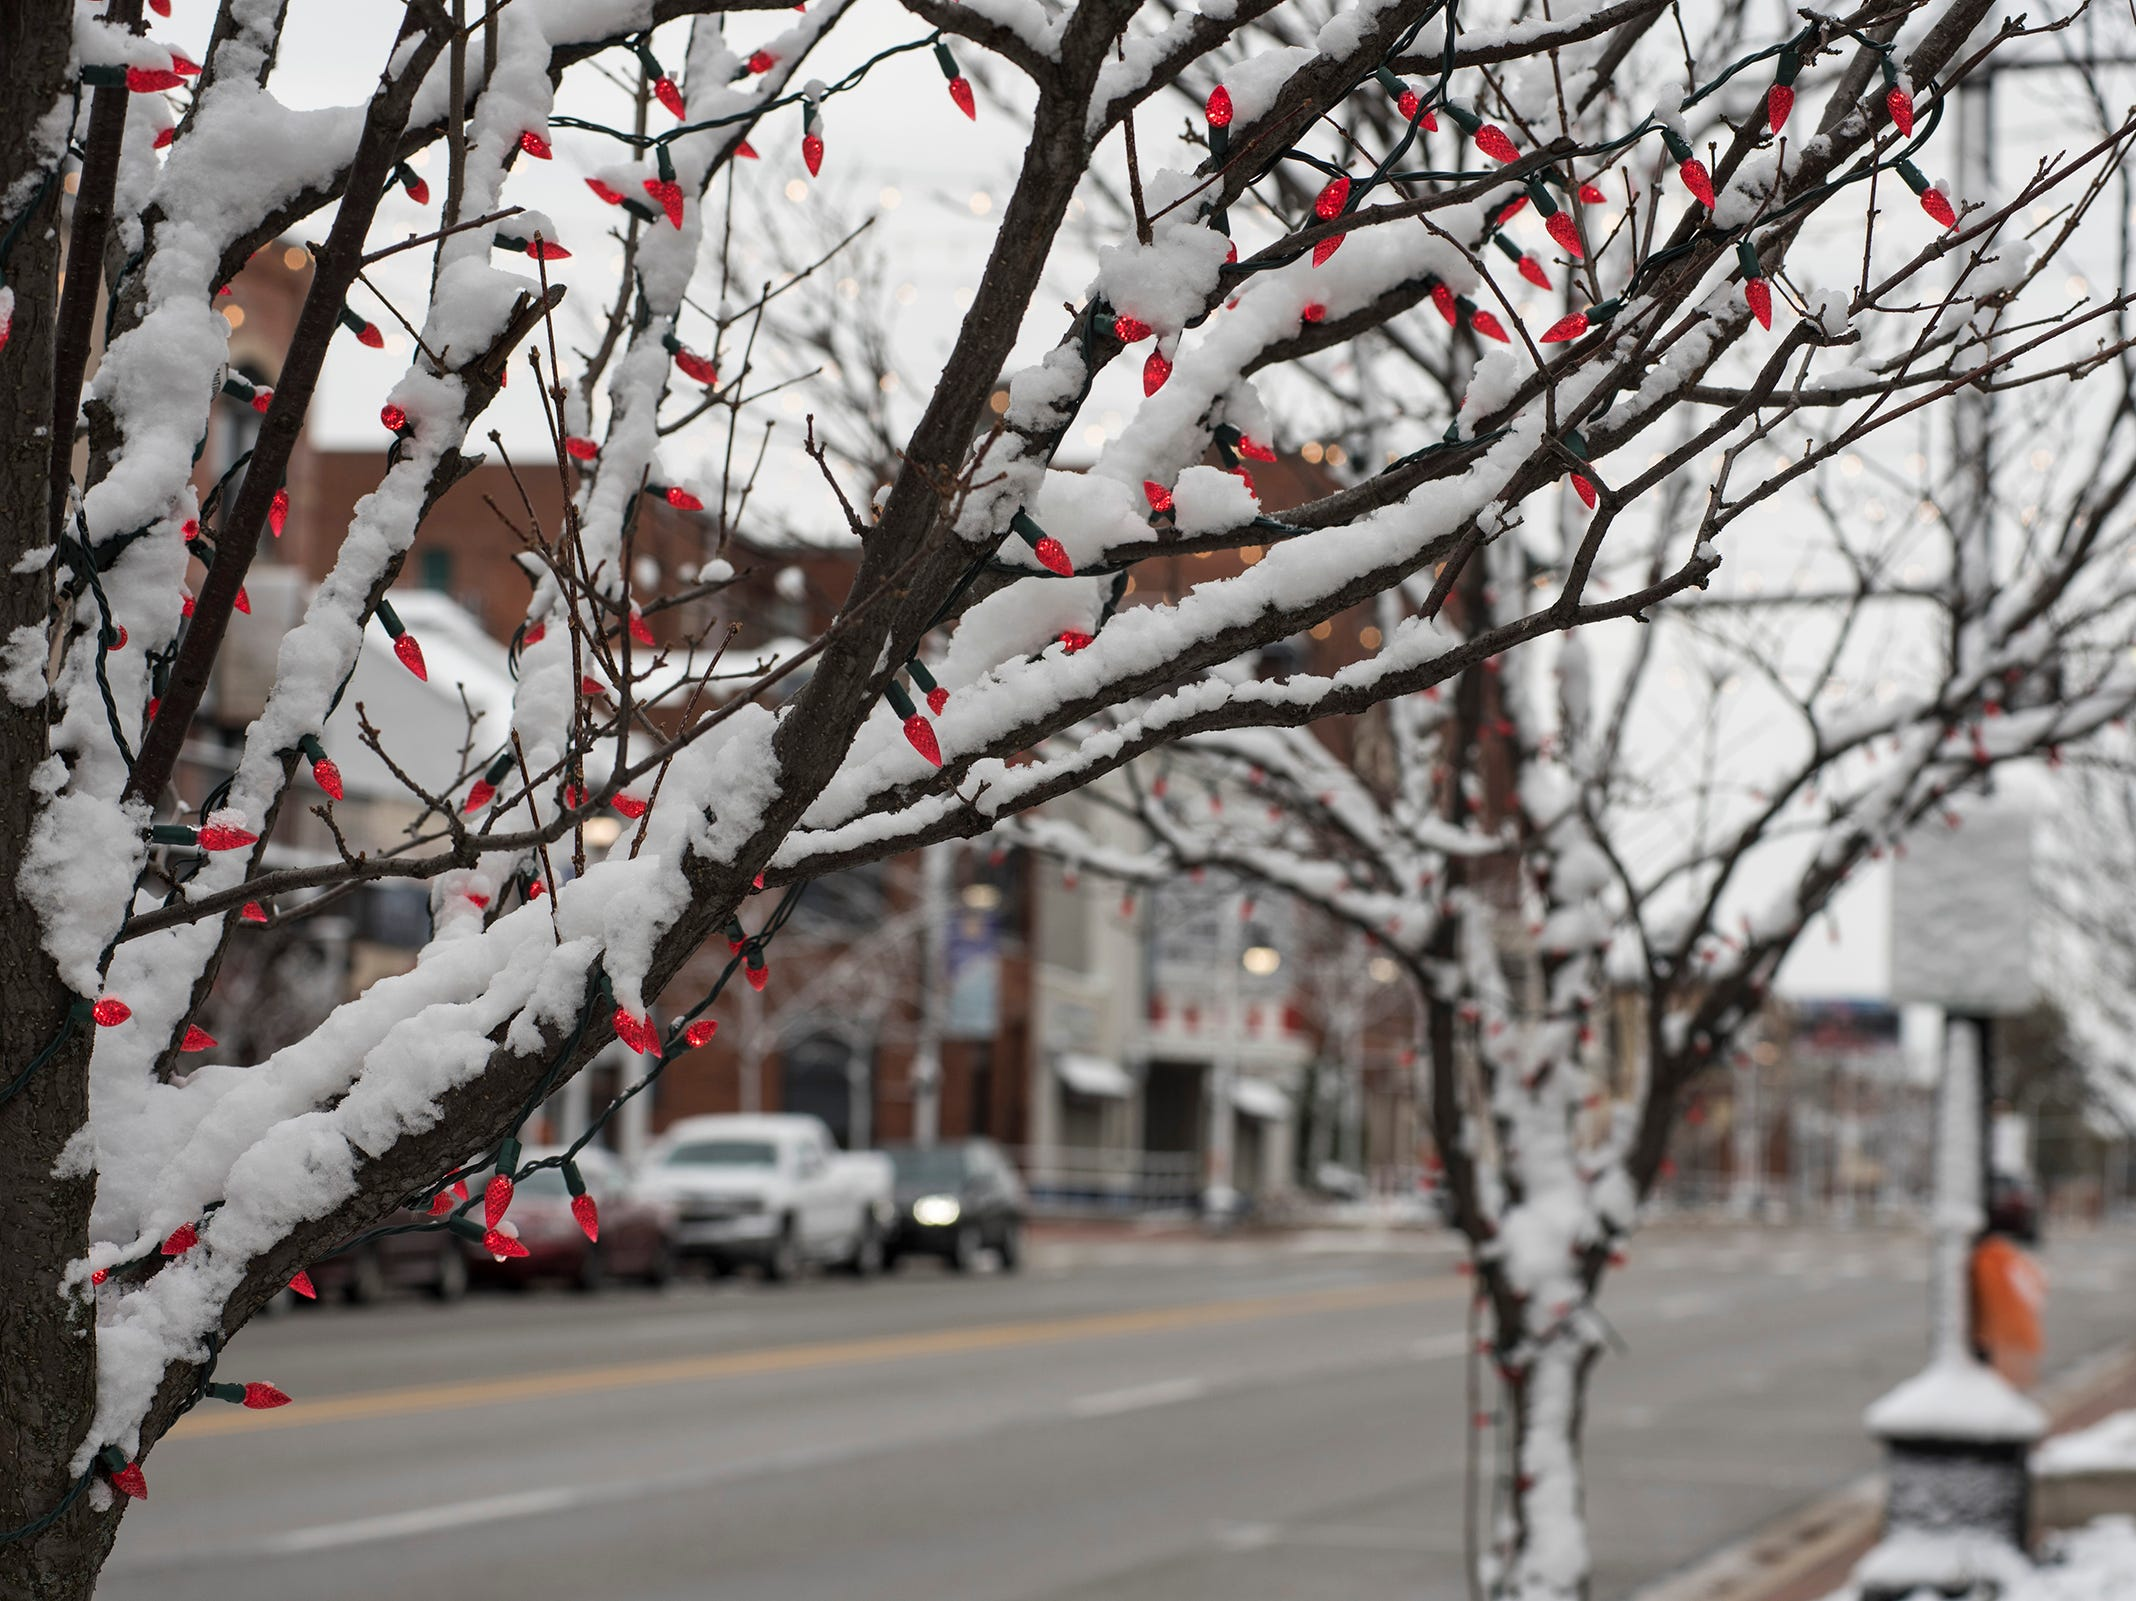 Snow surrounds red Christmas lights strung throughout trees in downtown Port Huron Tuesday, Nov. 13, 2018.